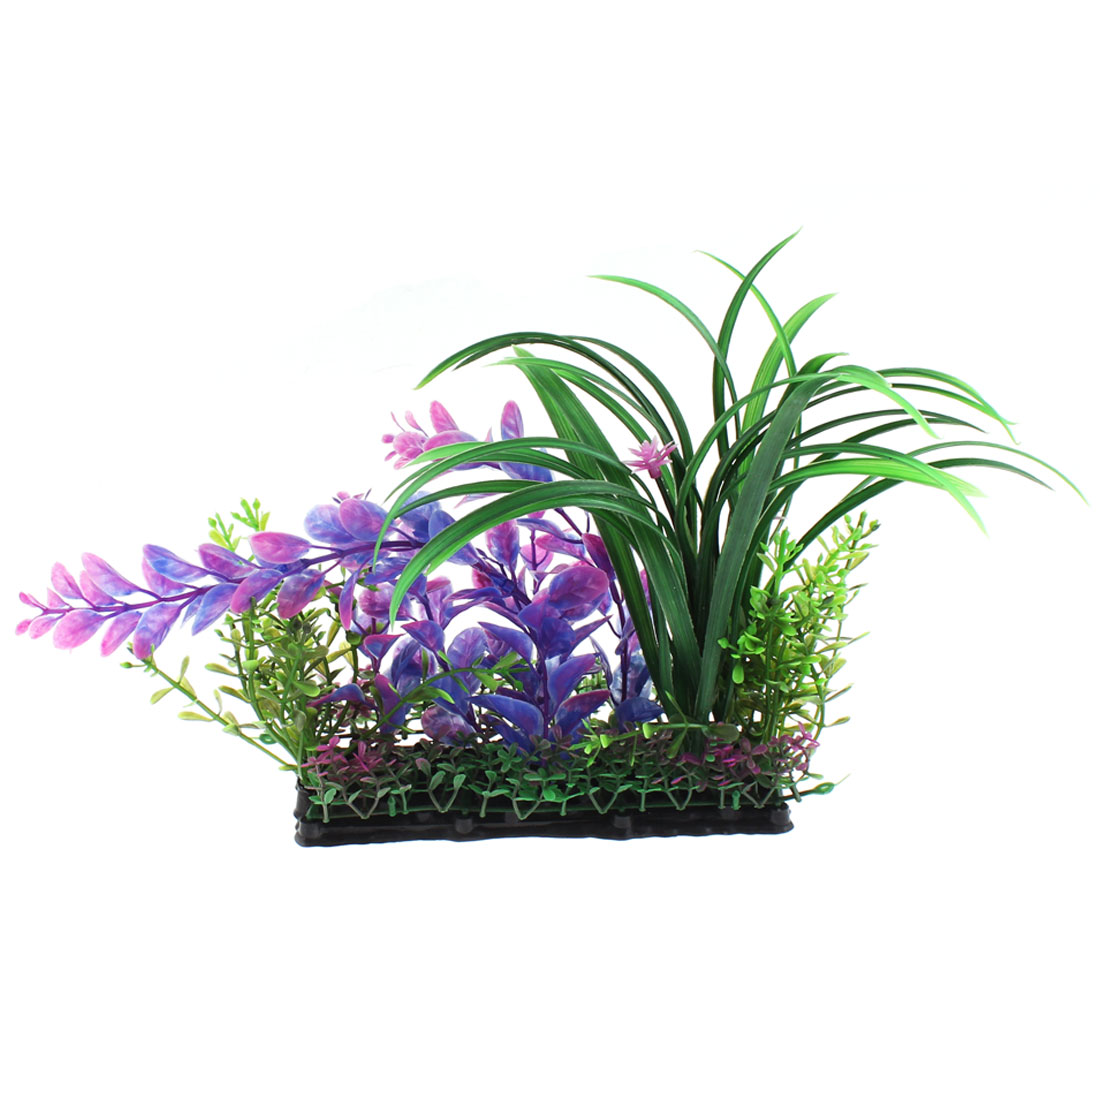 Aquarium Plastic Aquascaping Flower Plant Decor Purple Green